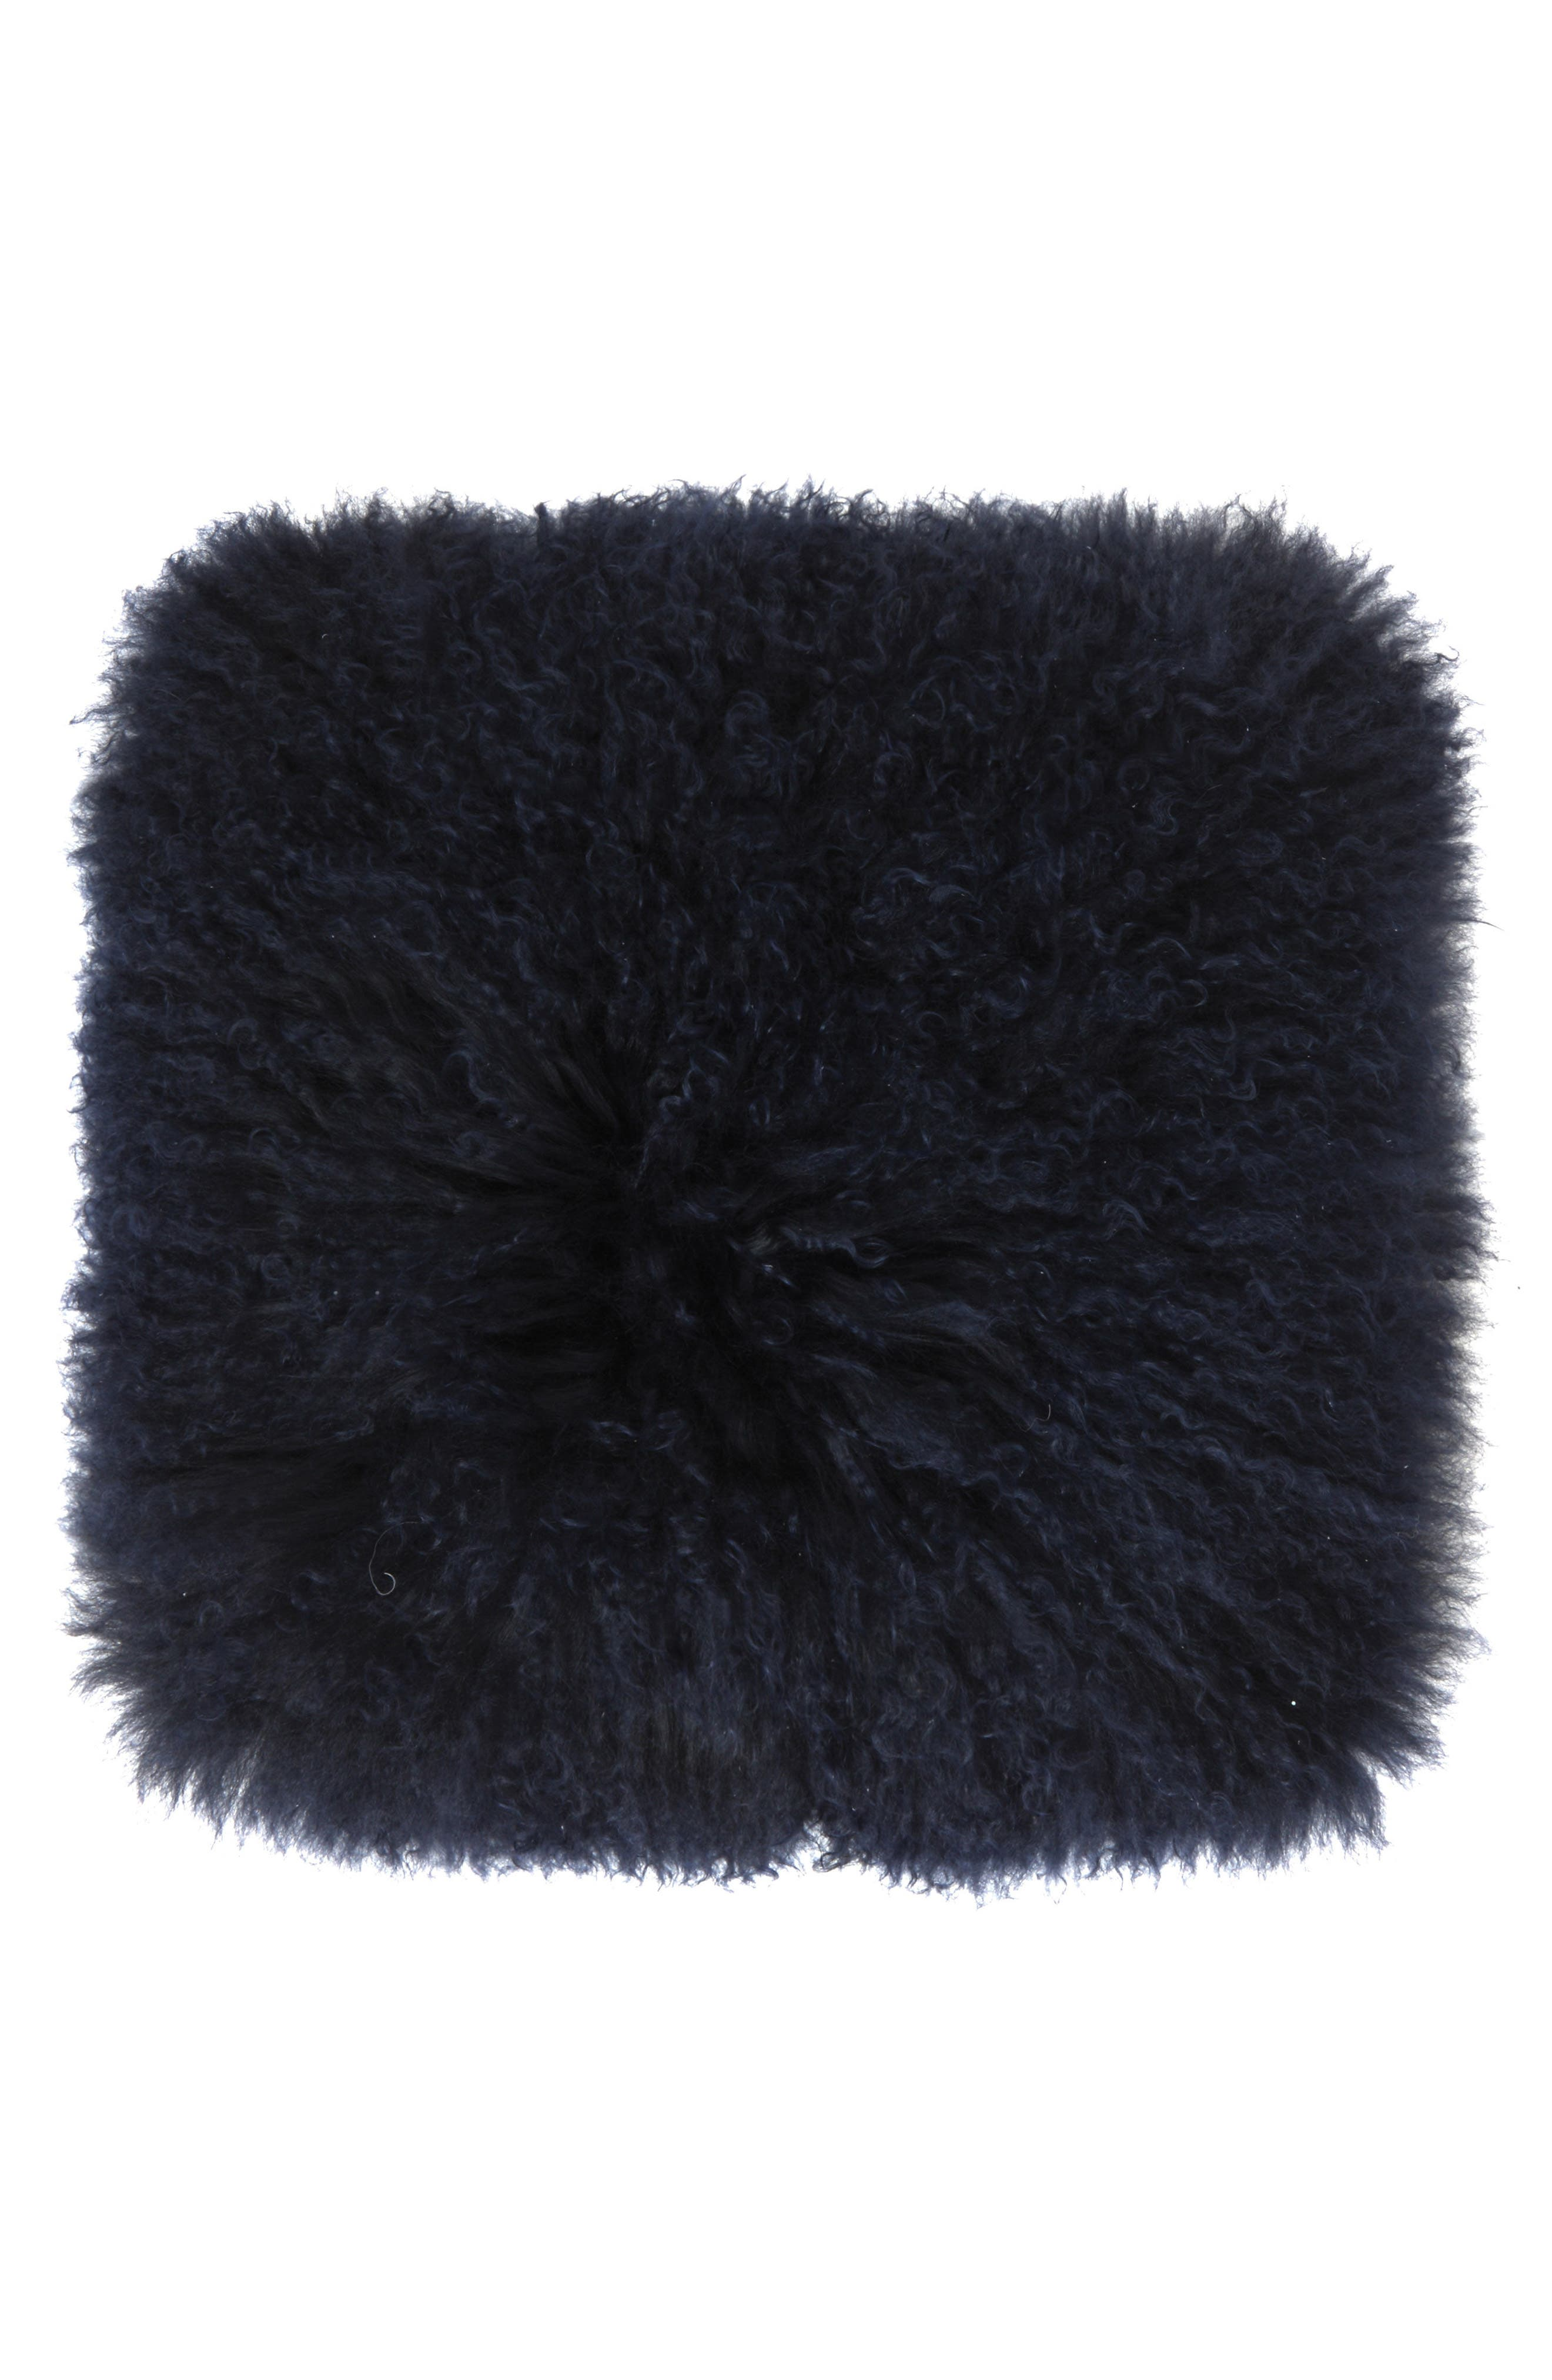 Main Image - Creative Co-Op Genuine Shearling Accent Pillow